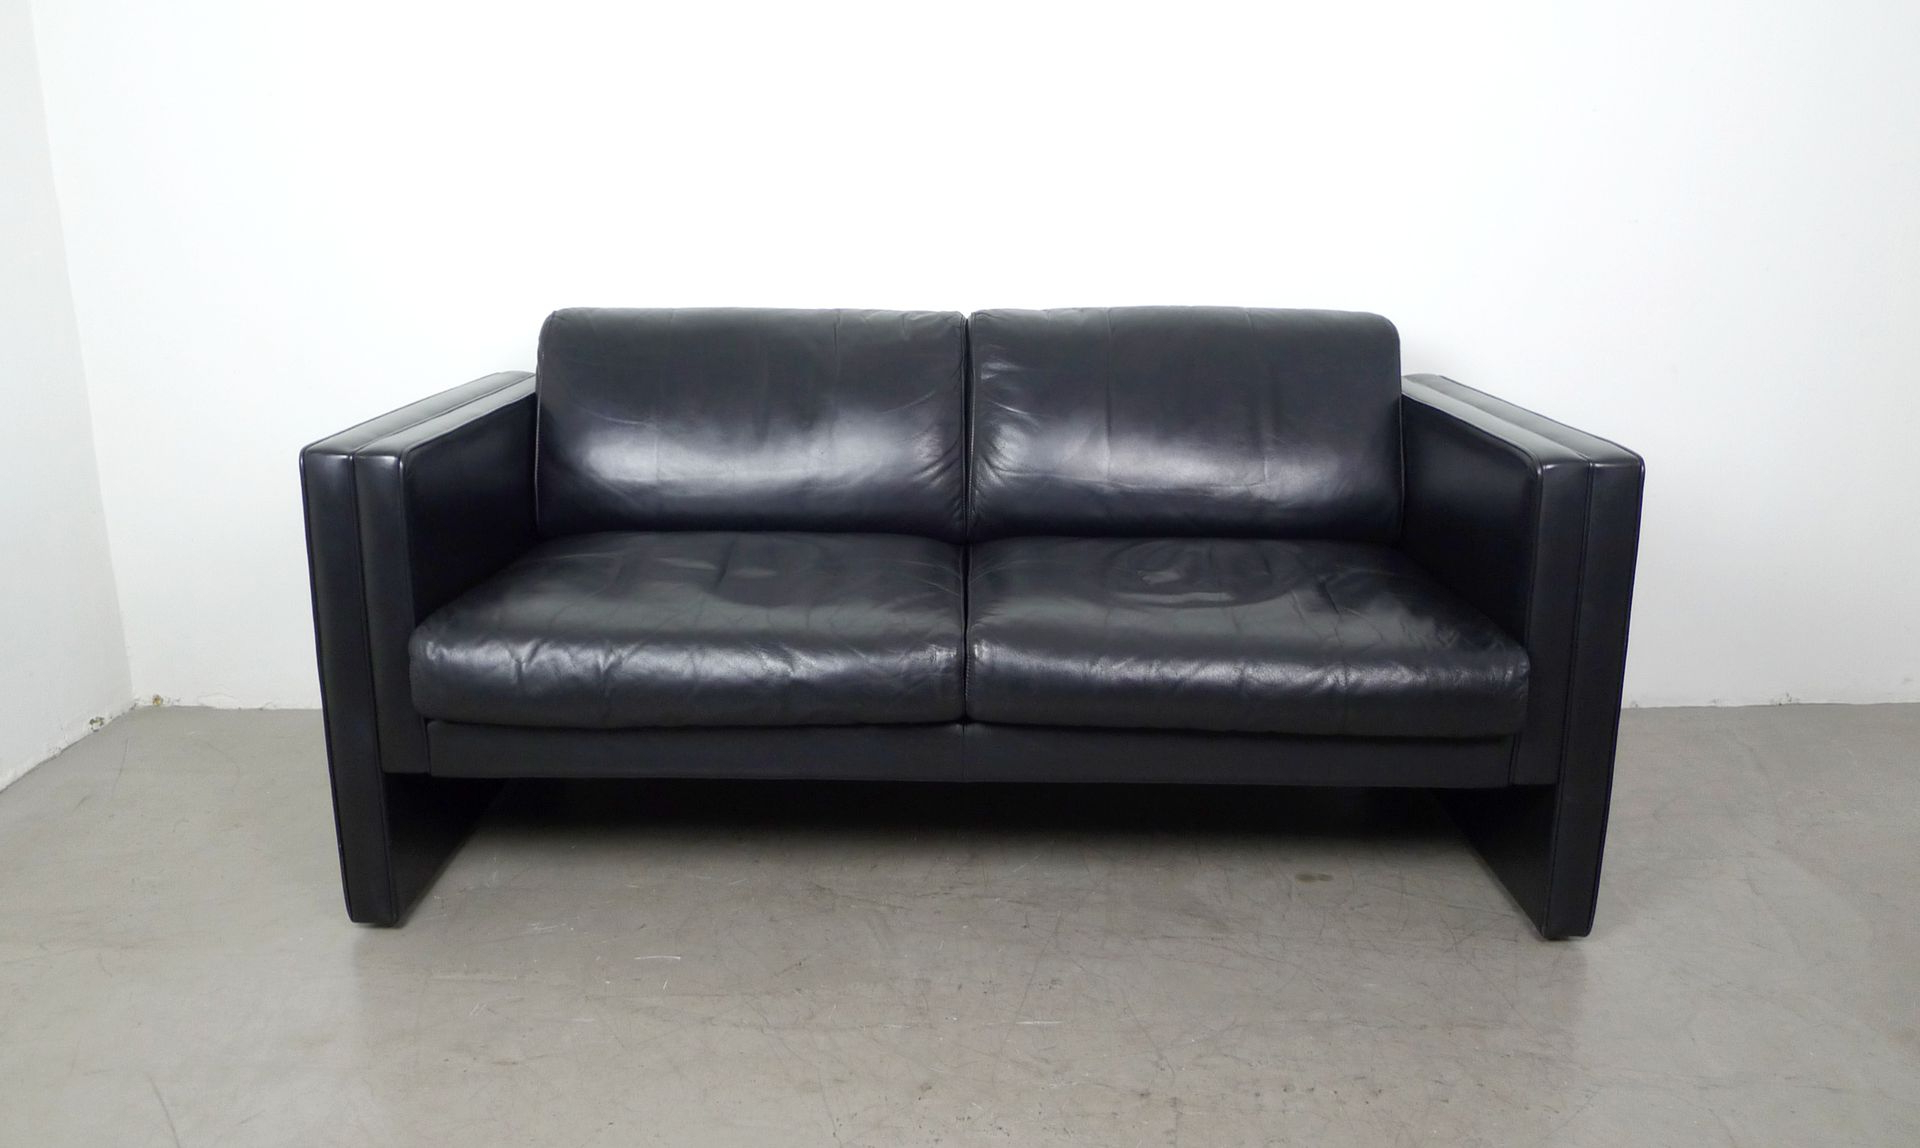 Fashionable Leather Sofajürgen Lange For Walter Knoll, 1980s For Sale At Pamono Throughout Walter Leather Sofa Chairs (View 3 of 20)